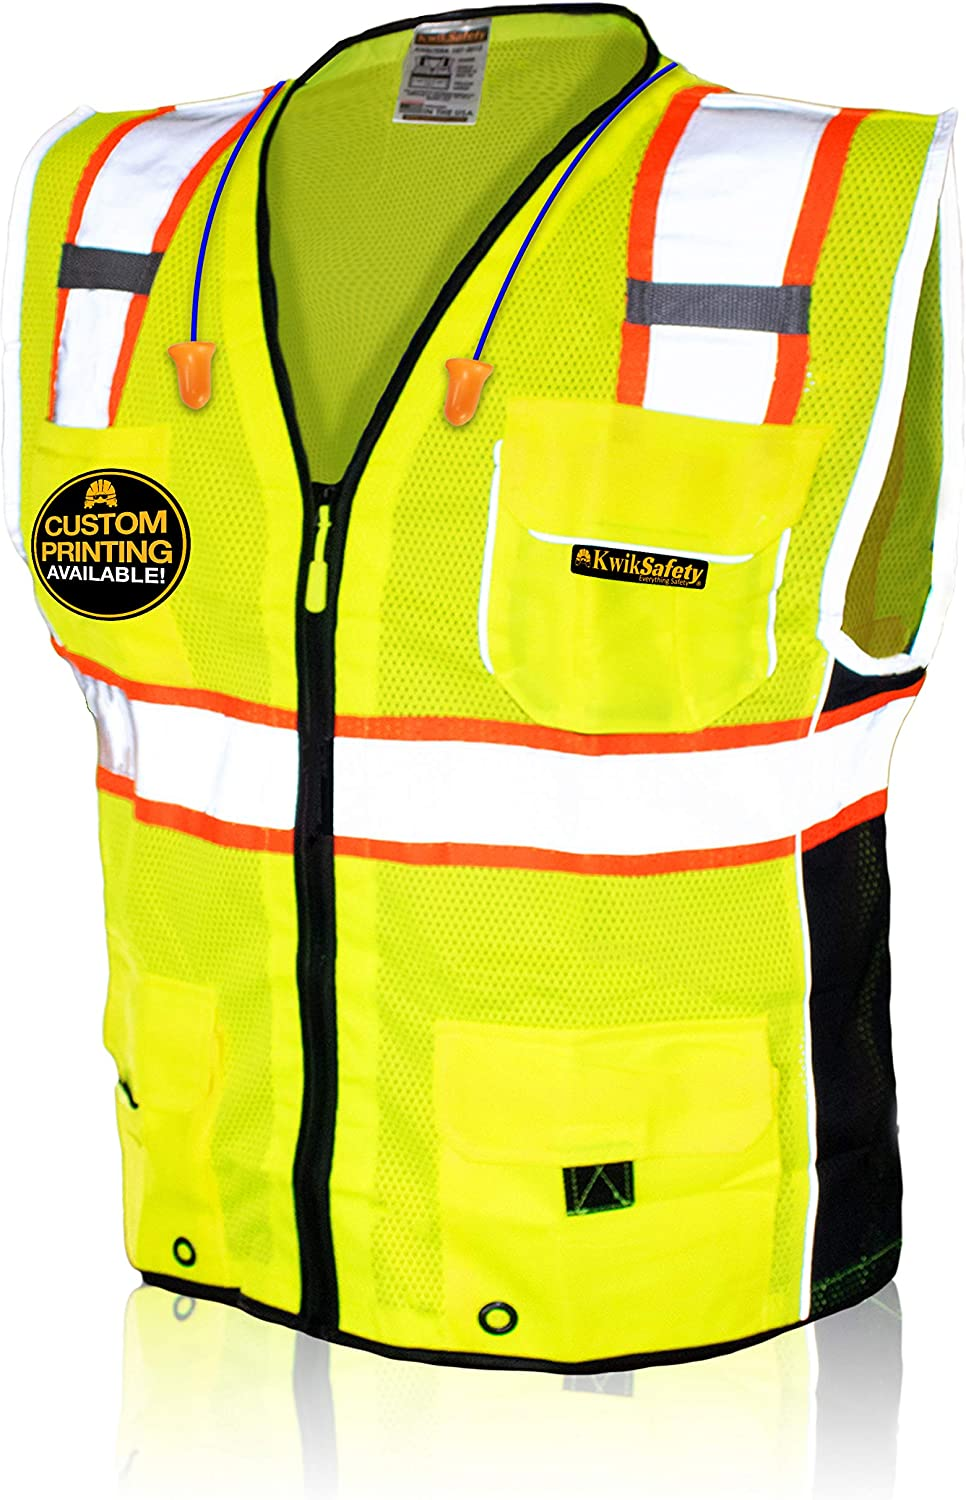 KwikSafety (Charlotte, NC) CLASSIC (10 Pockets) Class 2 ANSI High Visibility Reflective Safety Vest Heavy Duty Mesh with Zipper and HiVis OSHA Construction Work HiViz Men Women | Yellow X-Large - -